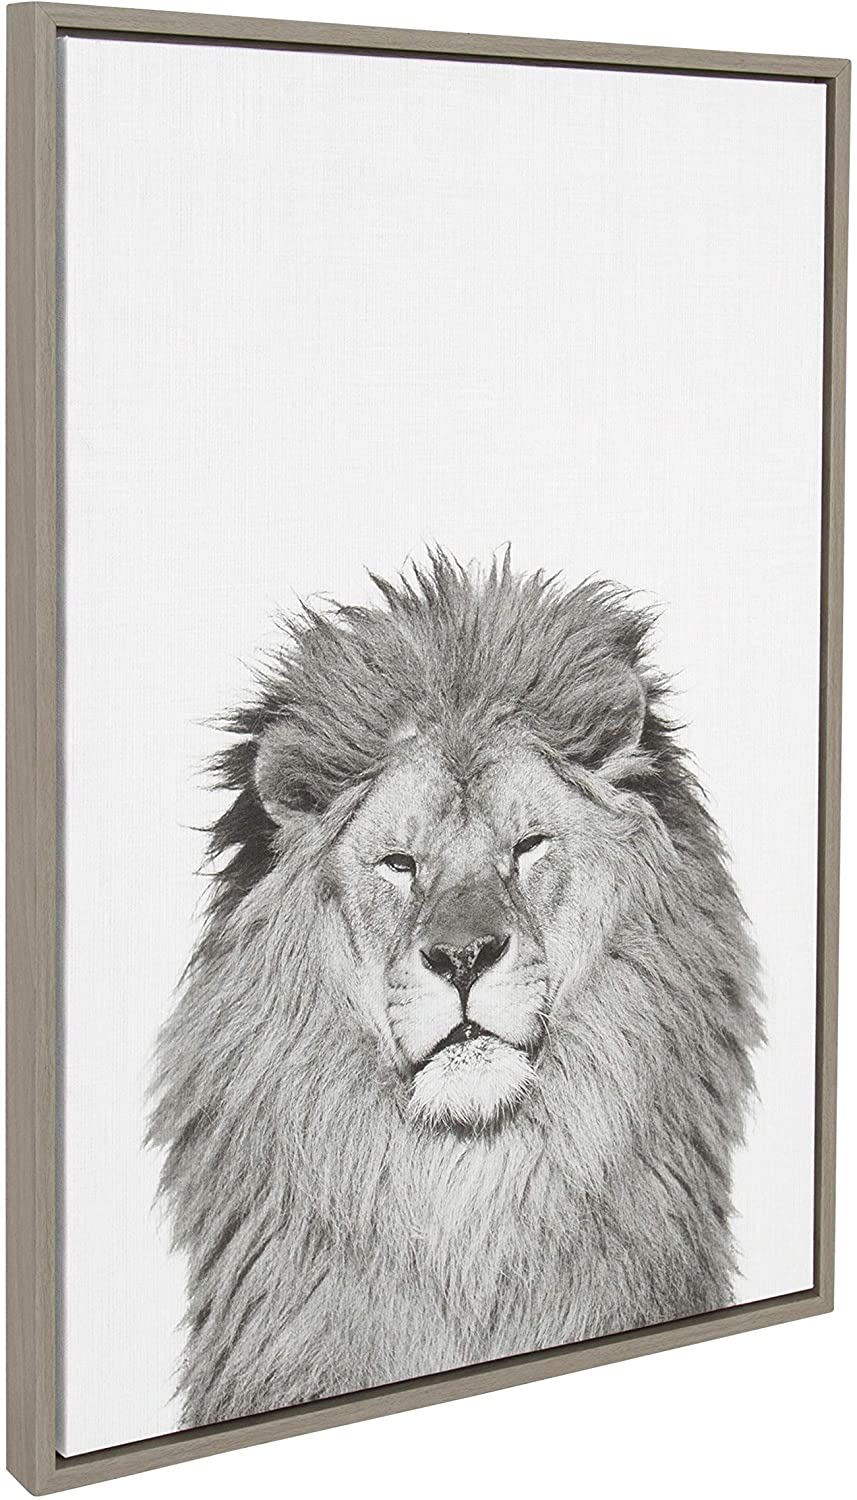 Lion Framed Canvas Wall Art Te Tai Gray 23x33 Modern Contemporary Rectangle